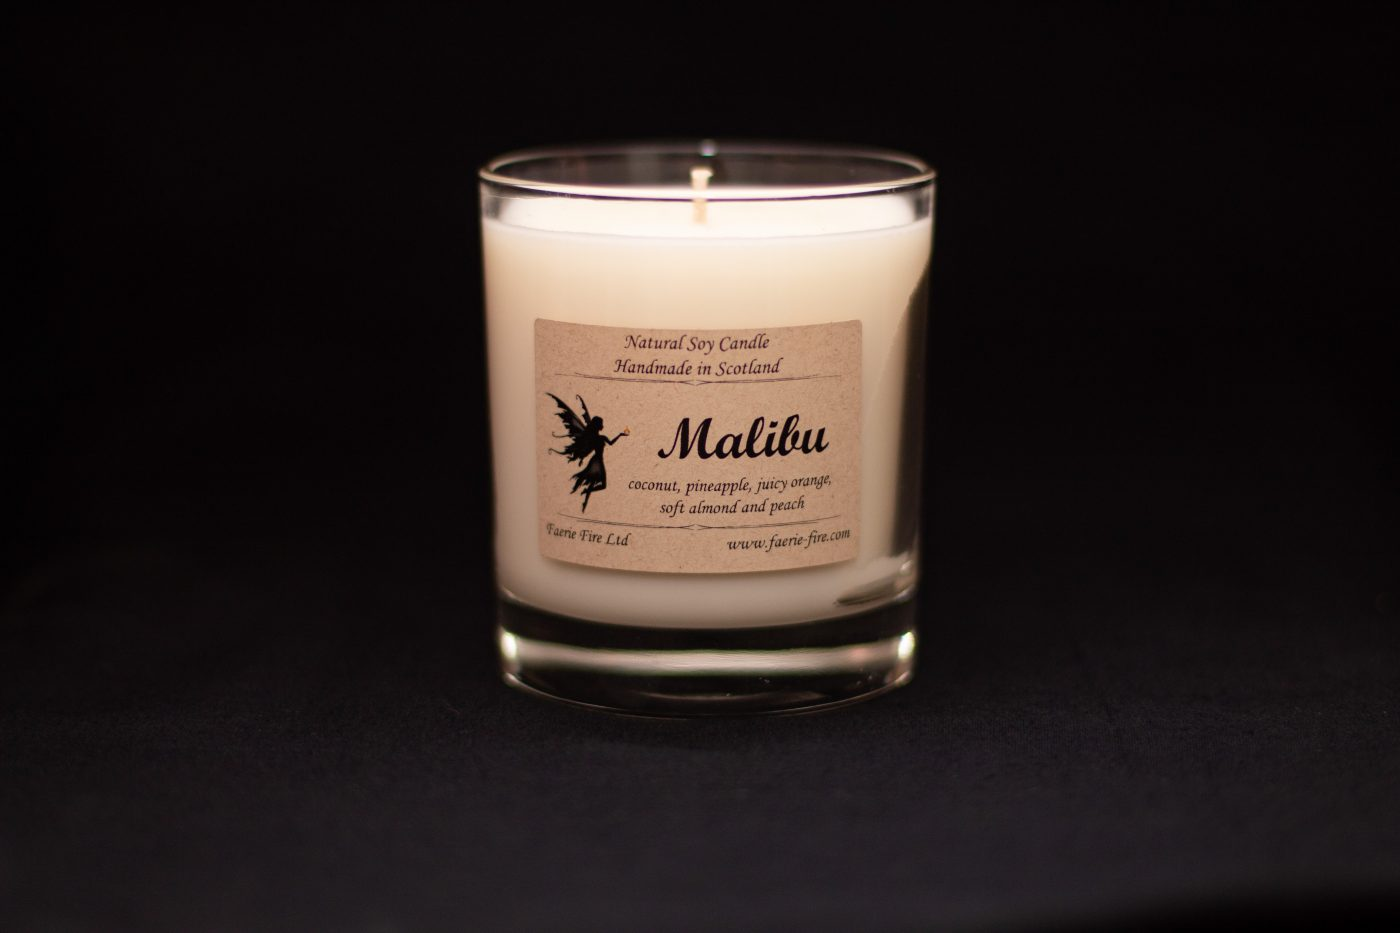 White soy candle in a clear glass jar smelling like coconut, pineapple and almond against a black darkground